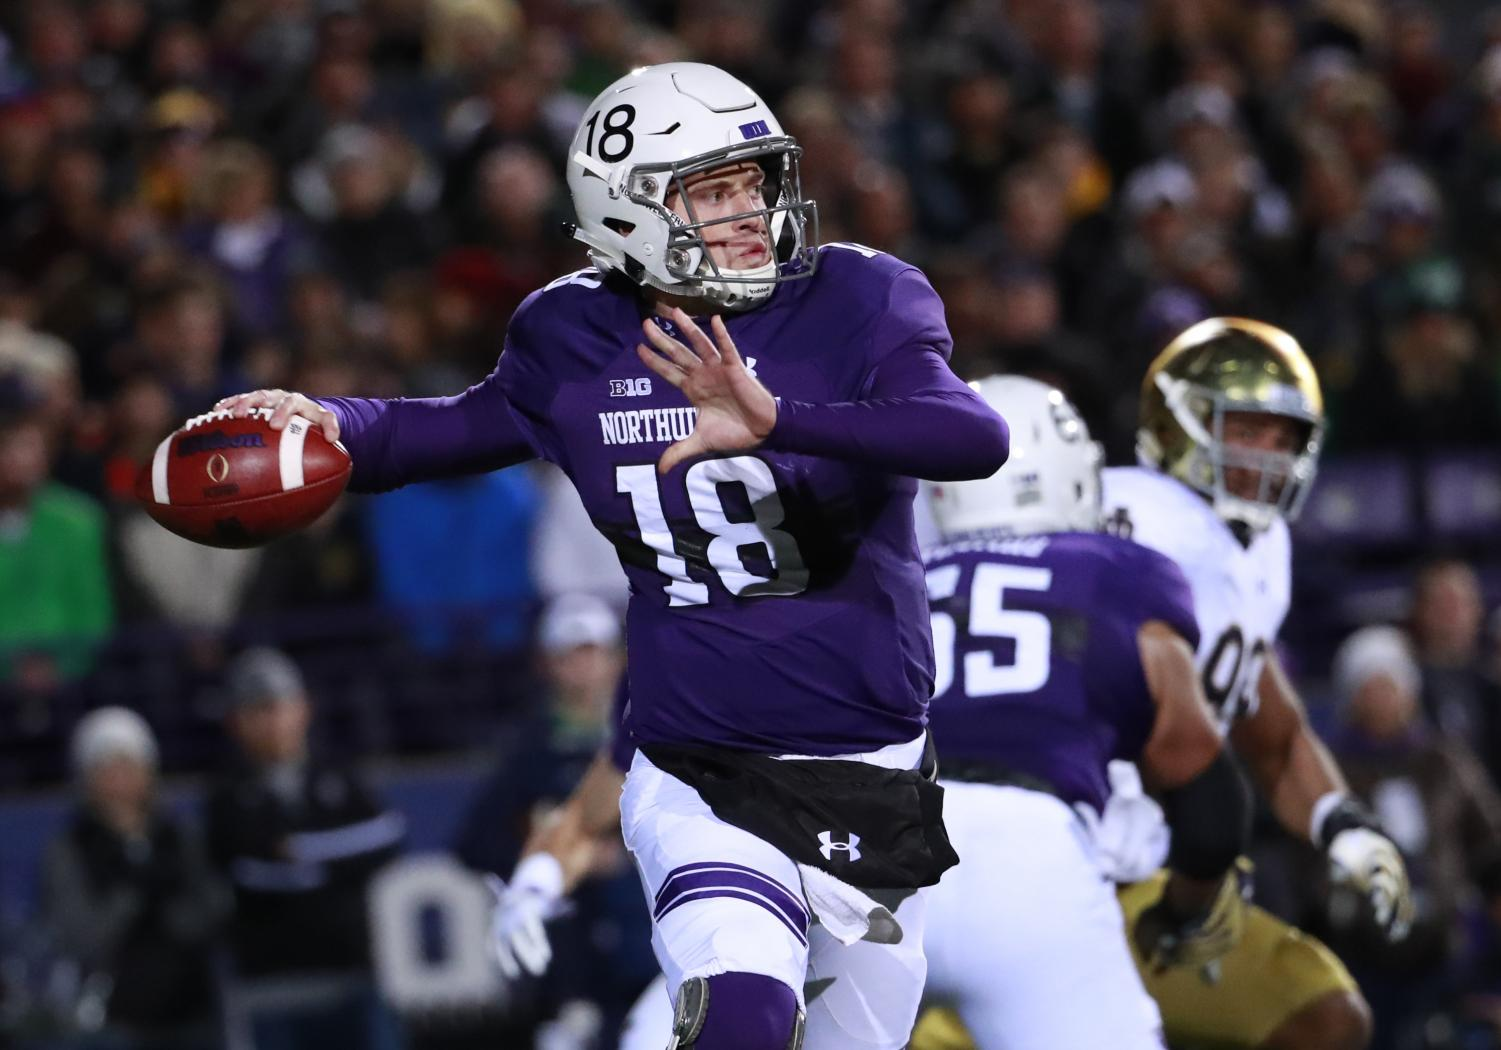 Northwestern Wildcats quarterback Clayton Thorson (18) throws a pass during the first half against the Notre Dame Fighting Irish at Ryan Field in Evanston, Ill., on Saturday, Nov. 31, 2018. Notre Dame won, 31-21. (Nuccio DiNuzzo/Chicago Tribune/TNS)